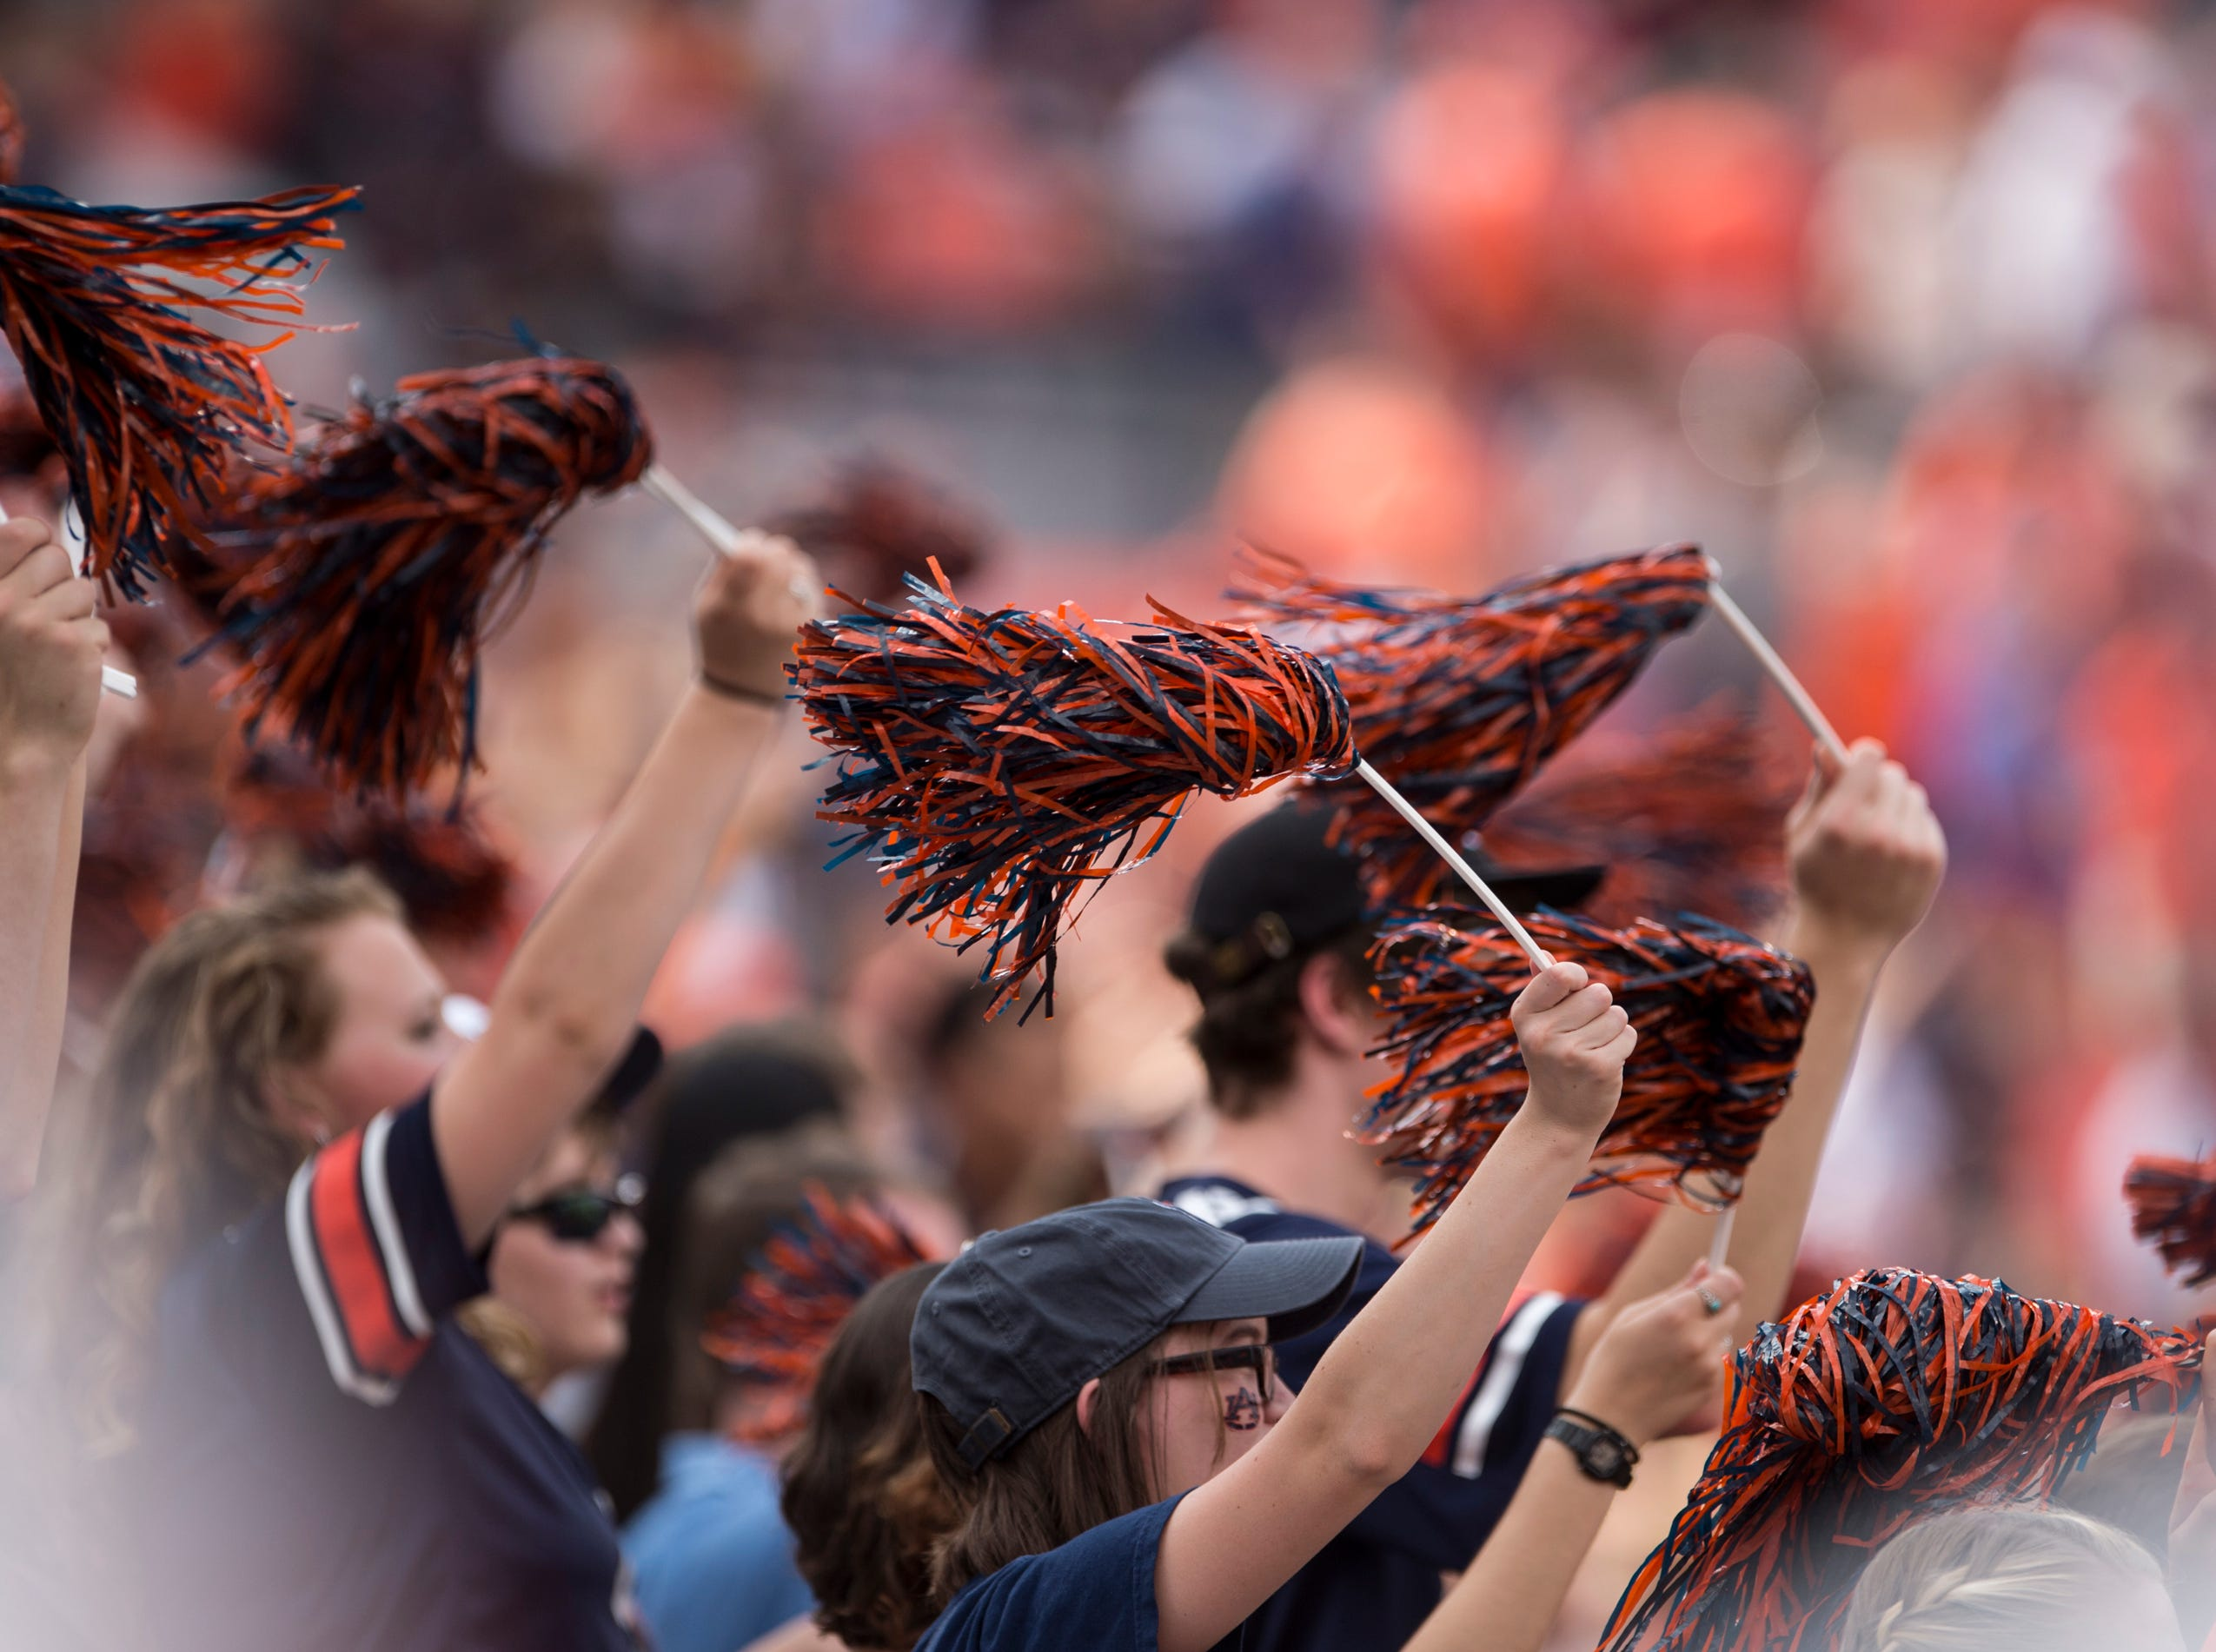 Fans wave pom-poms during the start of the game at Jordan-Hare Stadium in Auburn, Ala., on Saturday, Sept. 29, 2018. Auburn leads Southern Miss 14-3, the game went into a weather delay with 4:27 left in the second quarter.